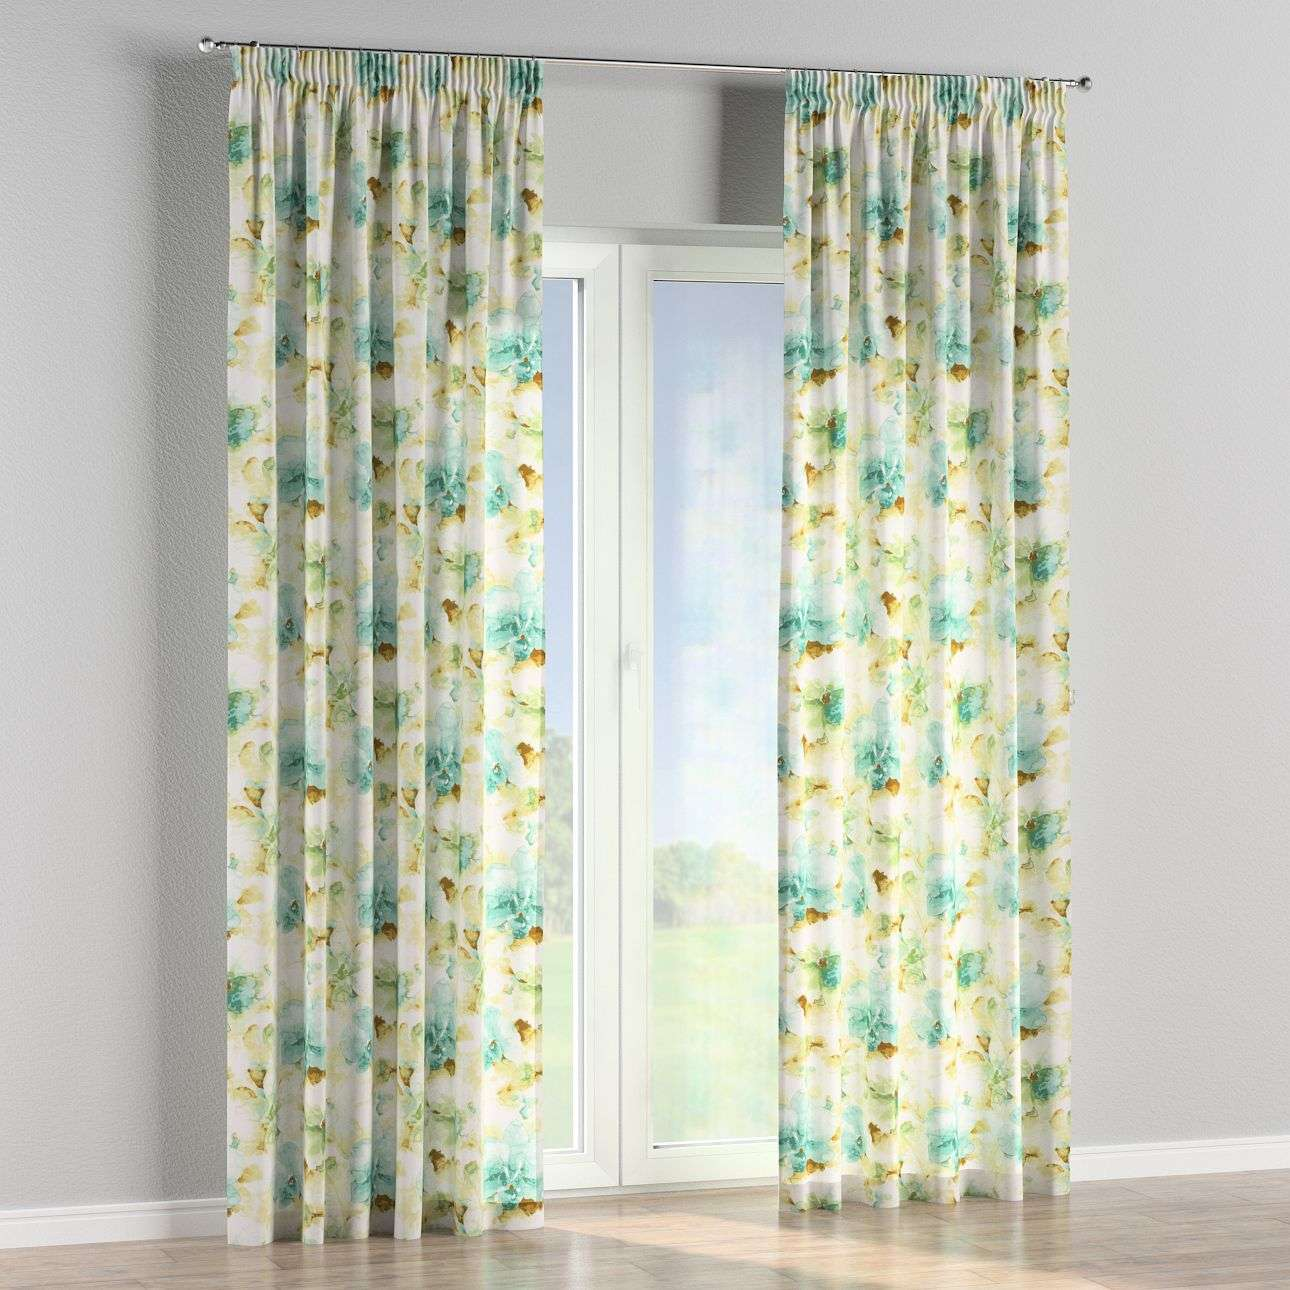 Pencil pleat curtains in collection Acapulco, fabric: 141-35